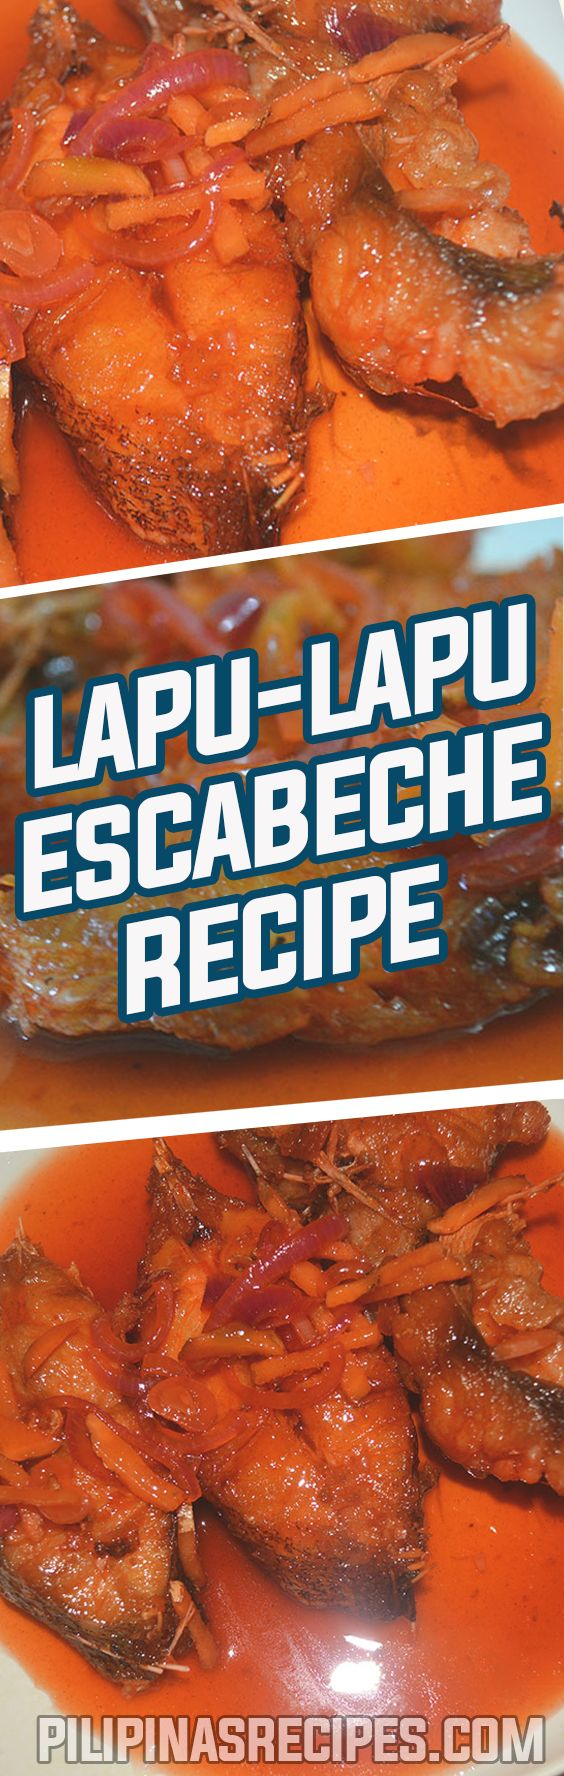 For the best Fish Escabeche Recipe, the common kinds of fish to use are Lapu-Lapu or red snapper because they are flaky and tender.